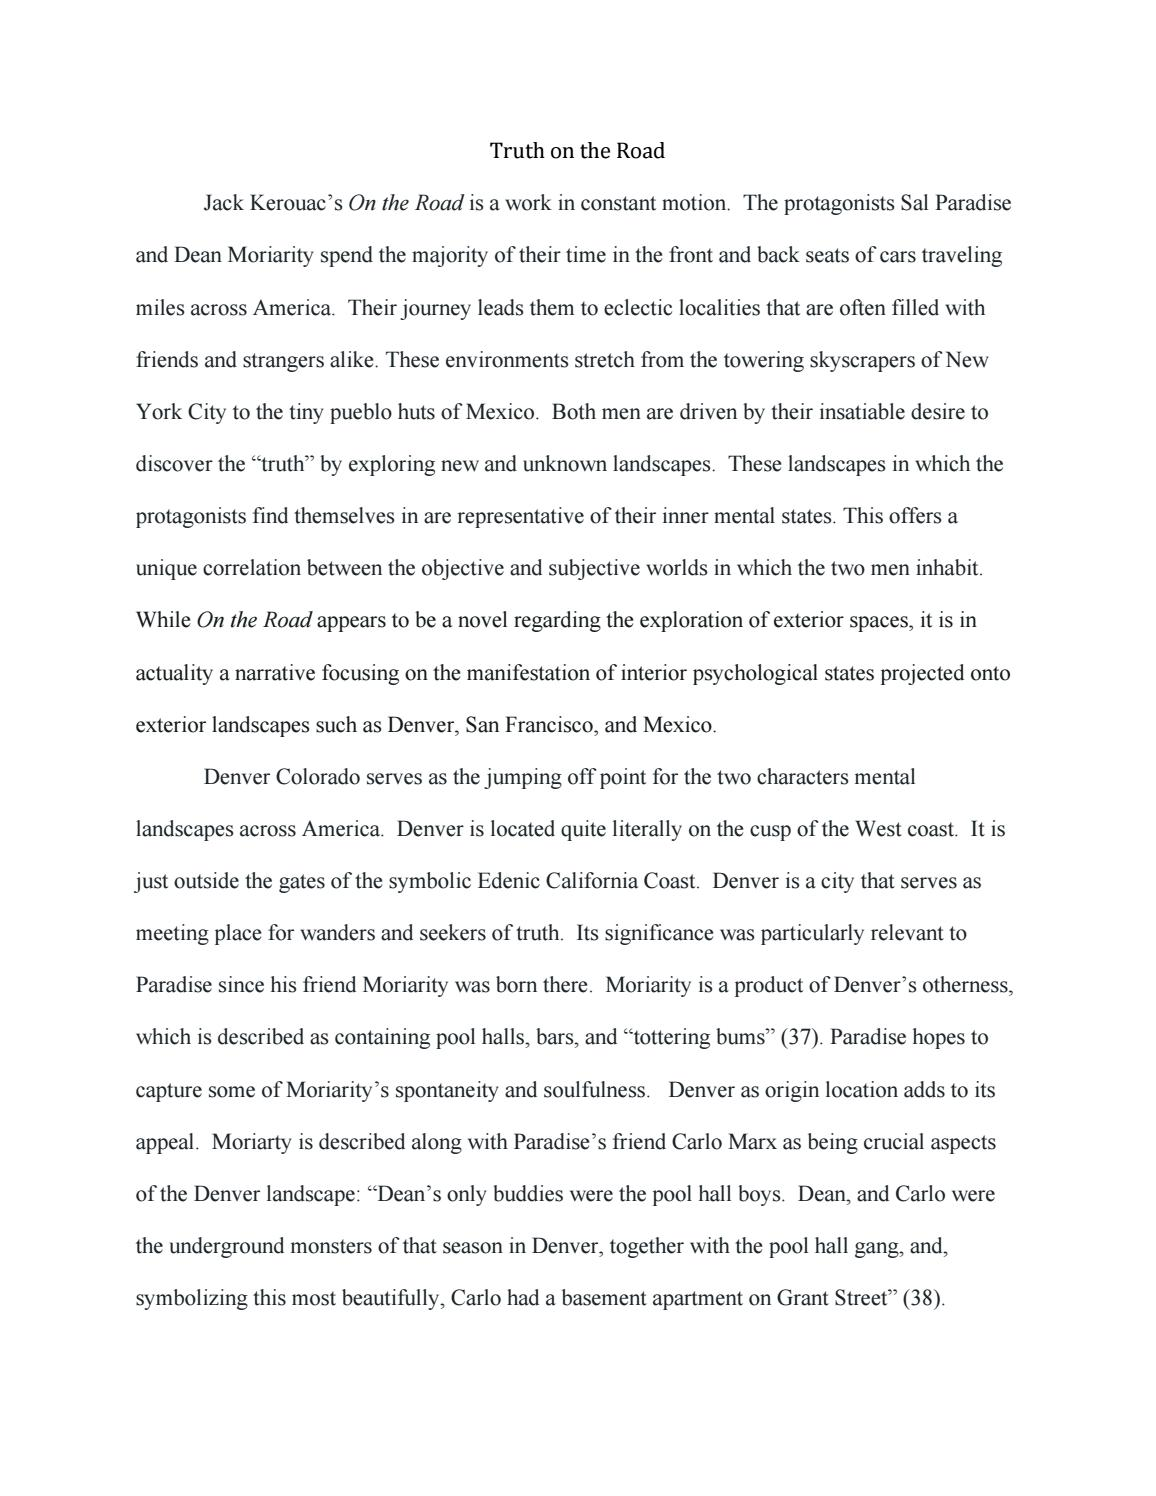 Essay Of Health Author Of Code Name Verity And The Askumite Cycle The Lion Hunters What Is Thesis In Essay also Thesis Essay Topics Stephen King Short Fiction Analysis  Essay What Is Thesis In An Essay